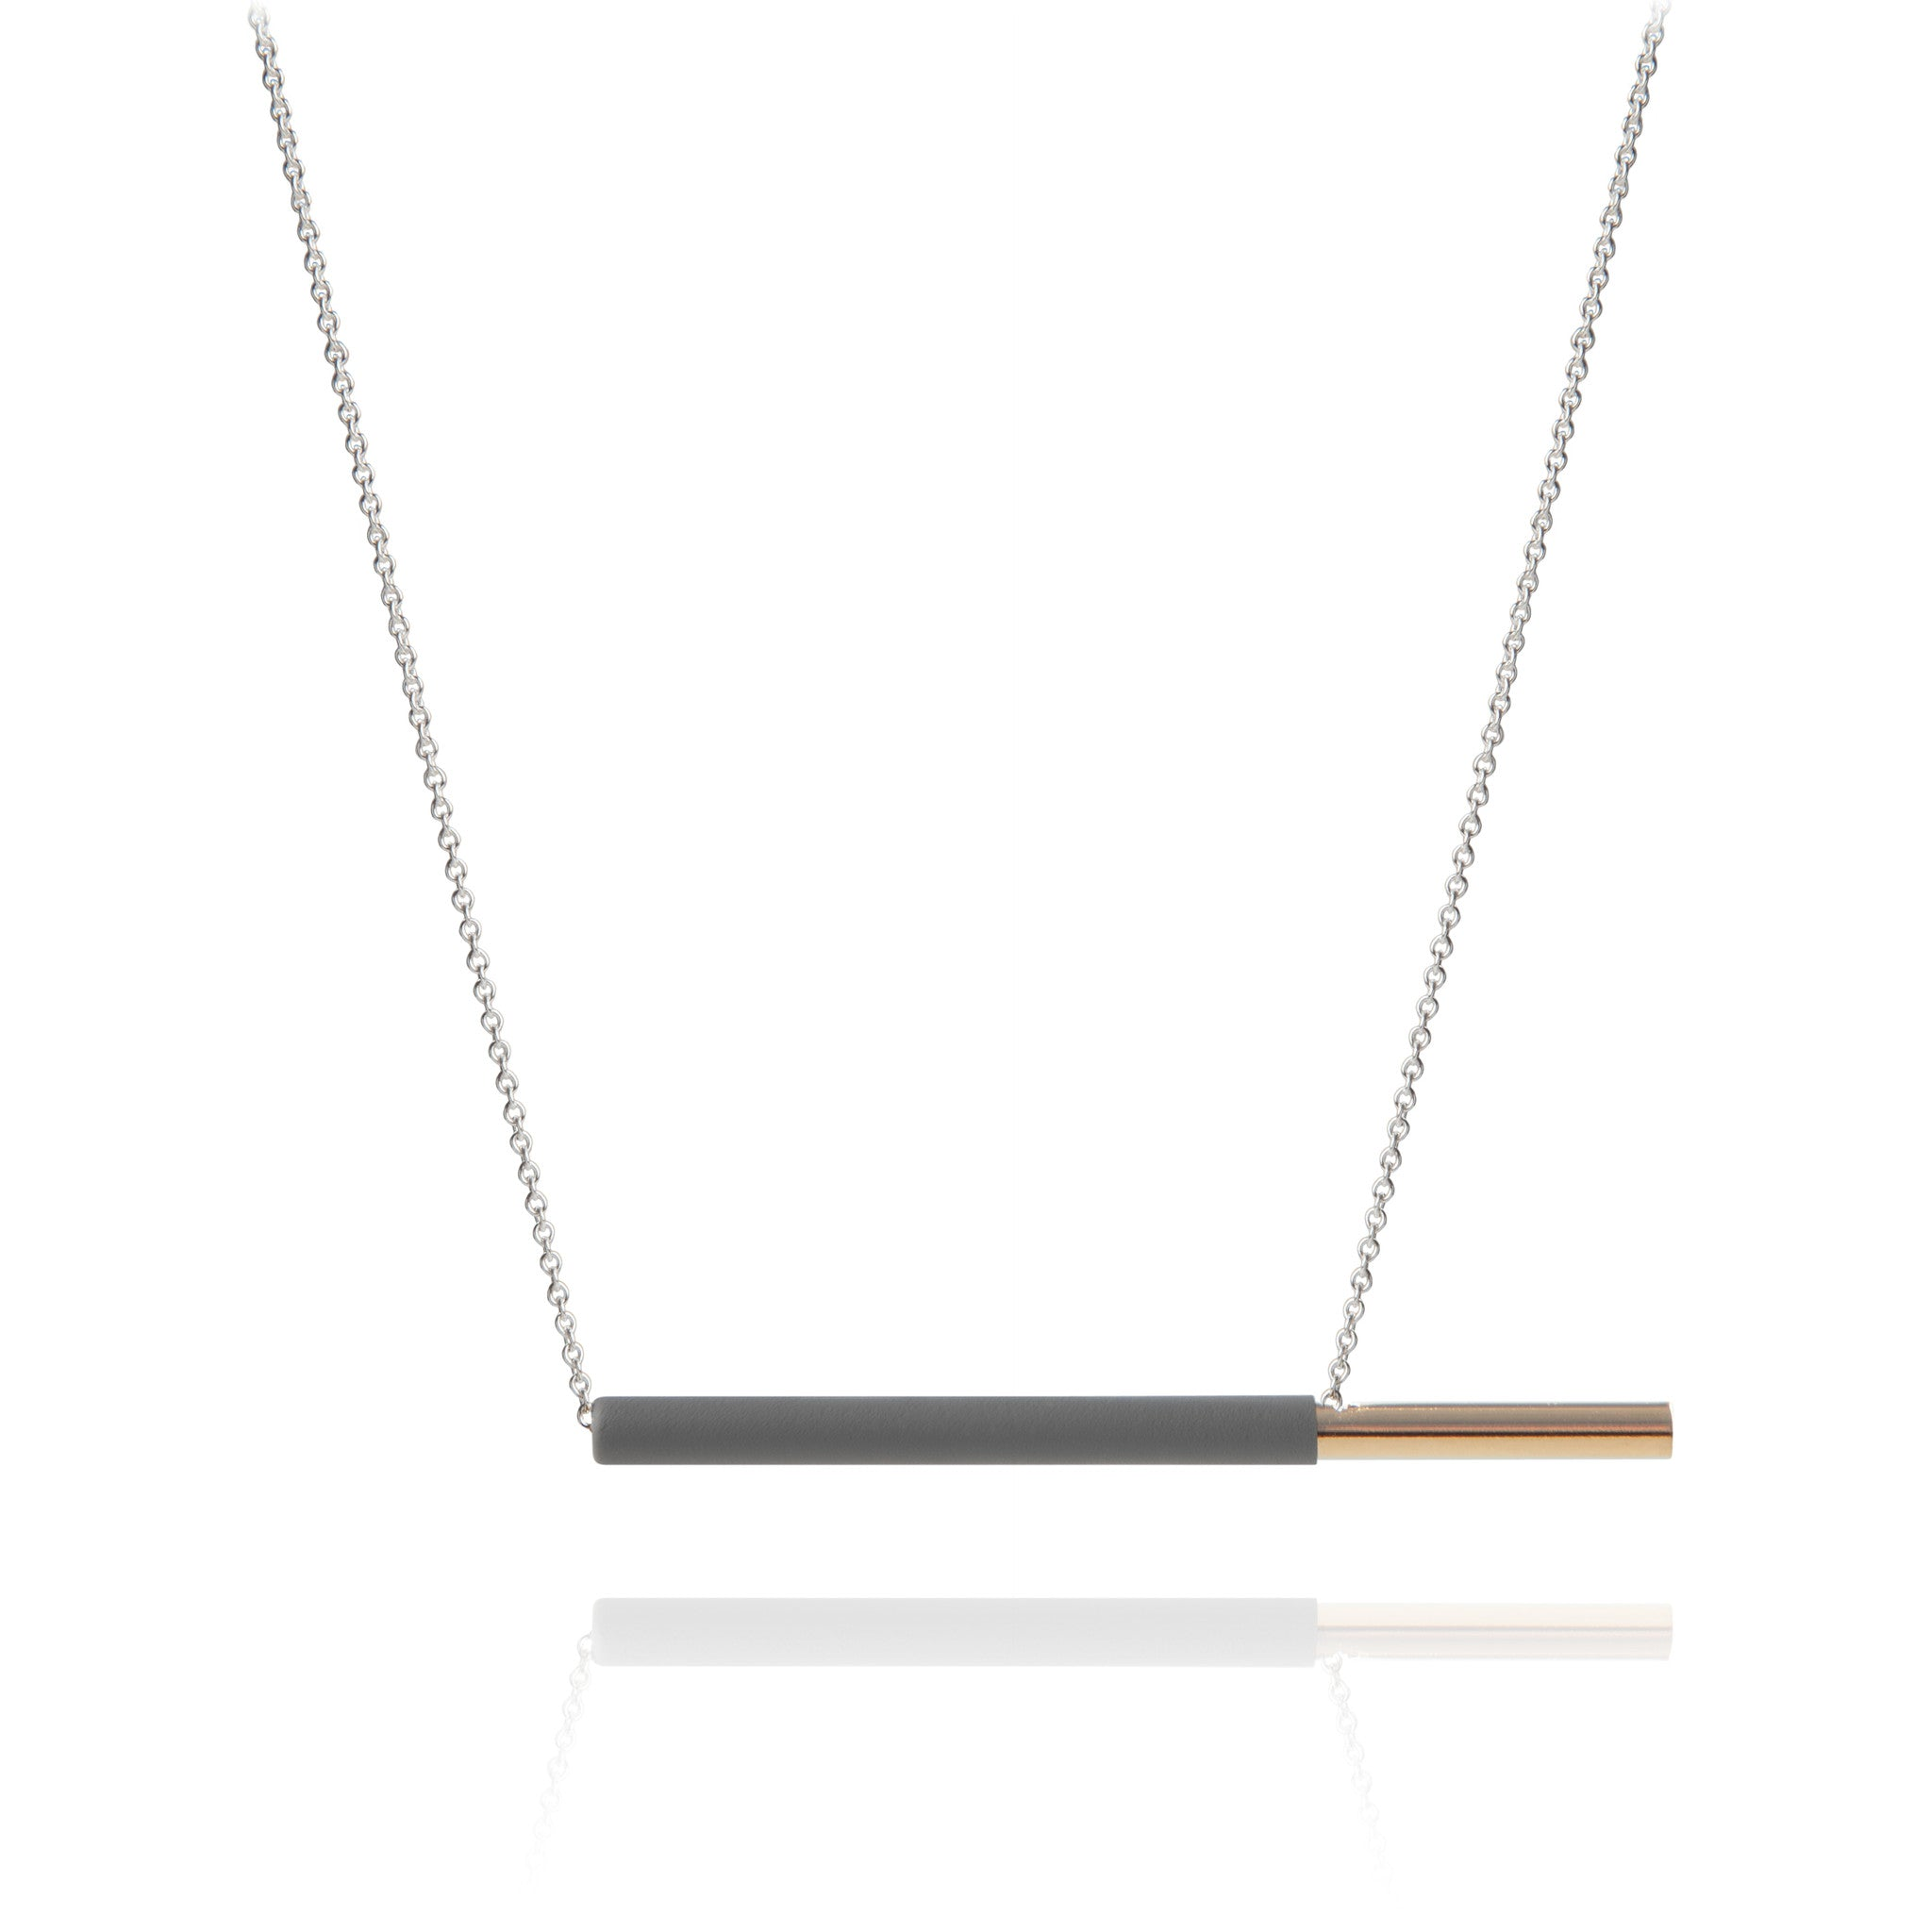 POCKY NECKLACE GREY